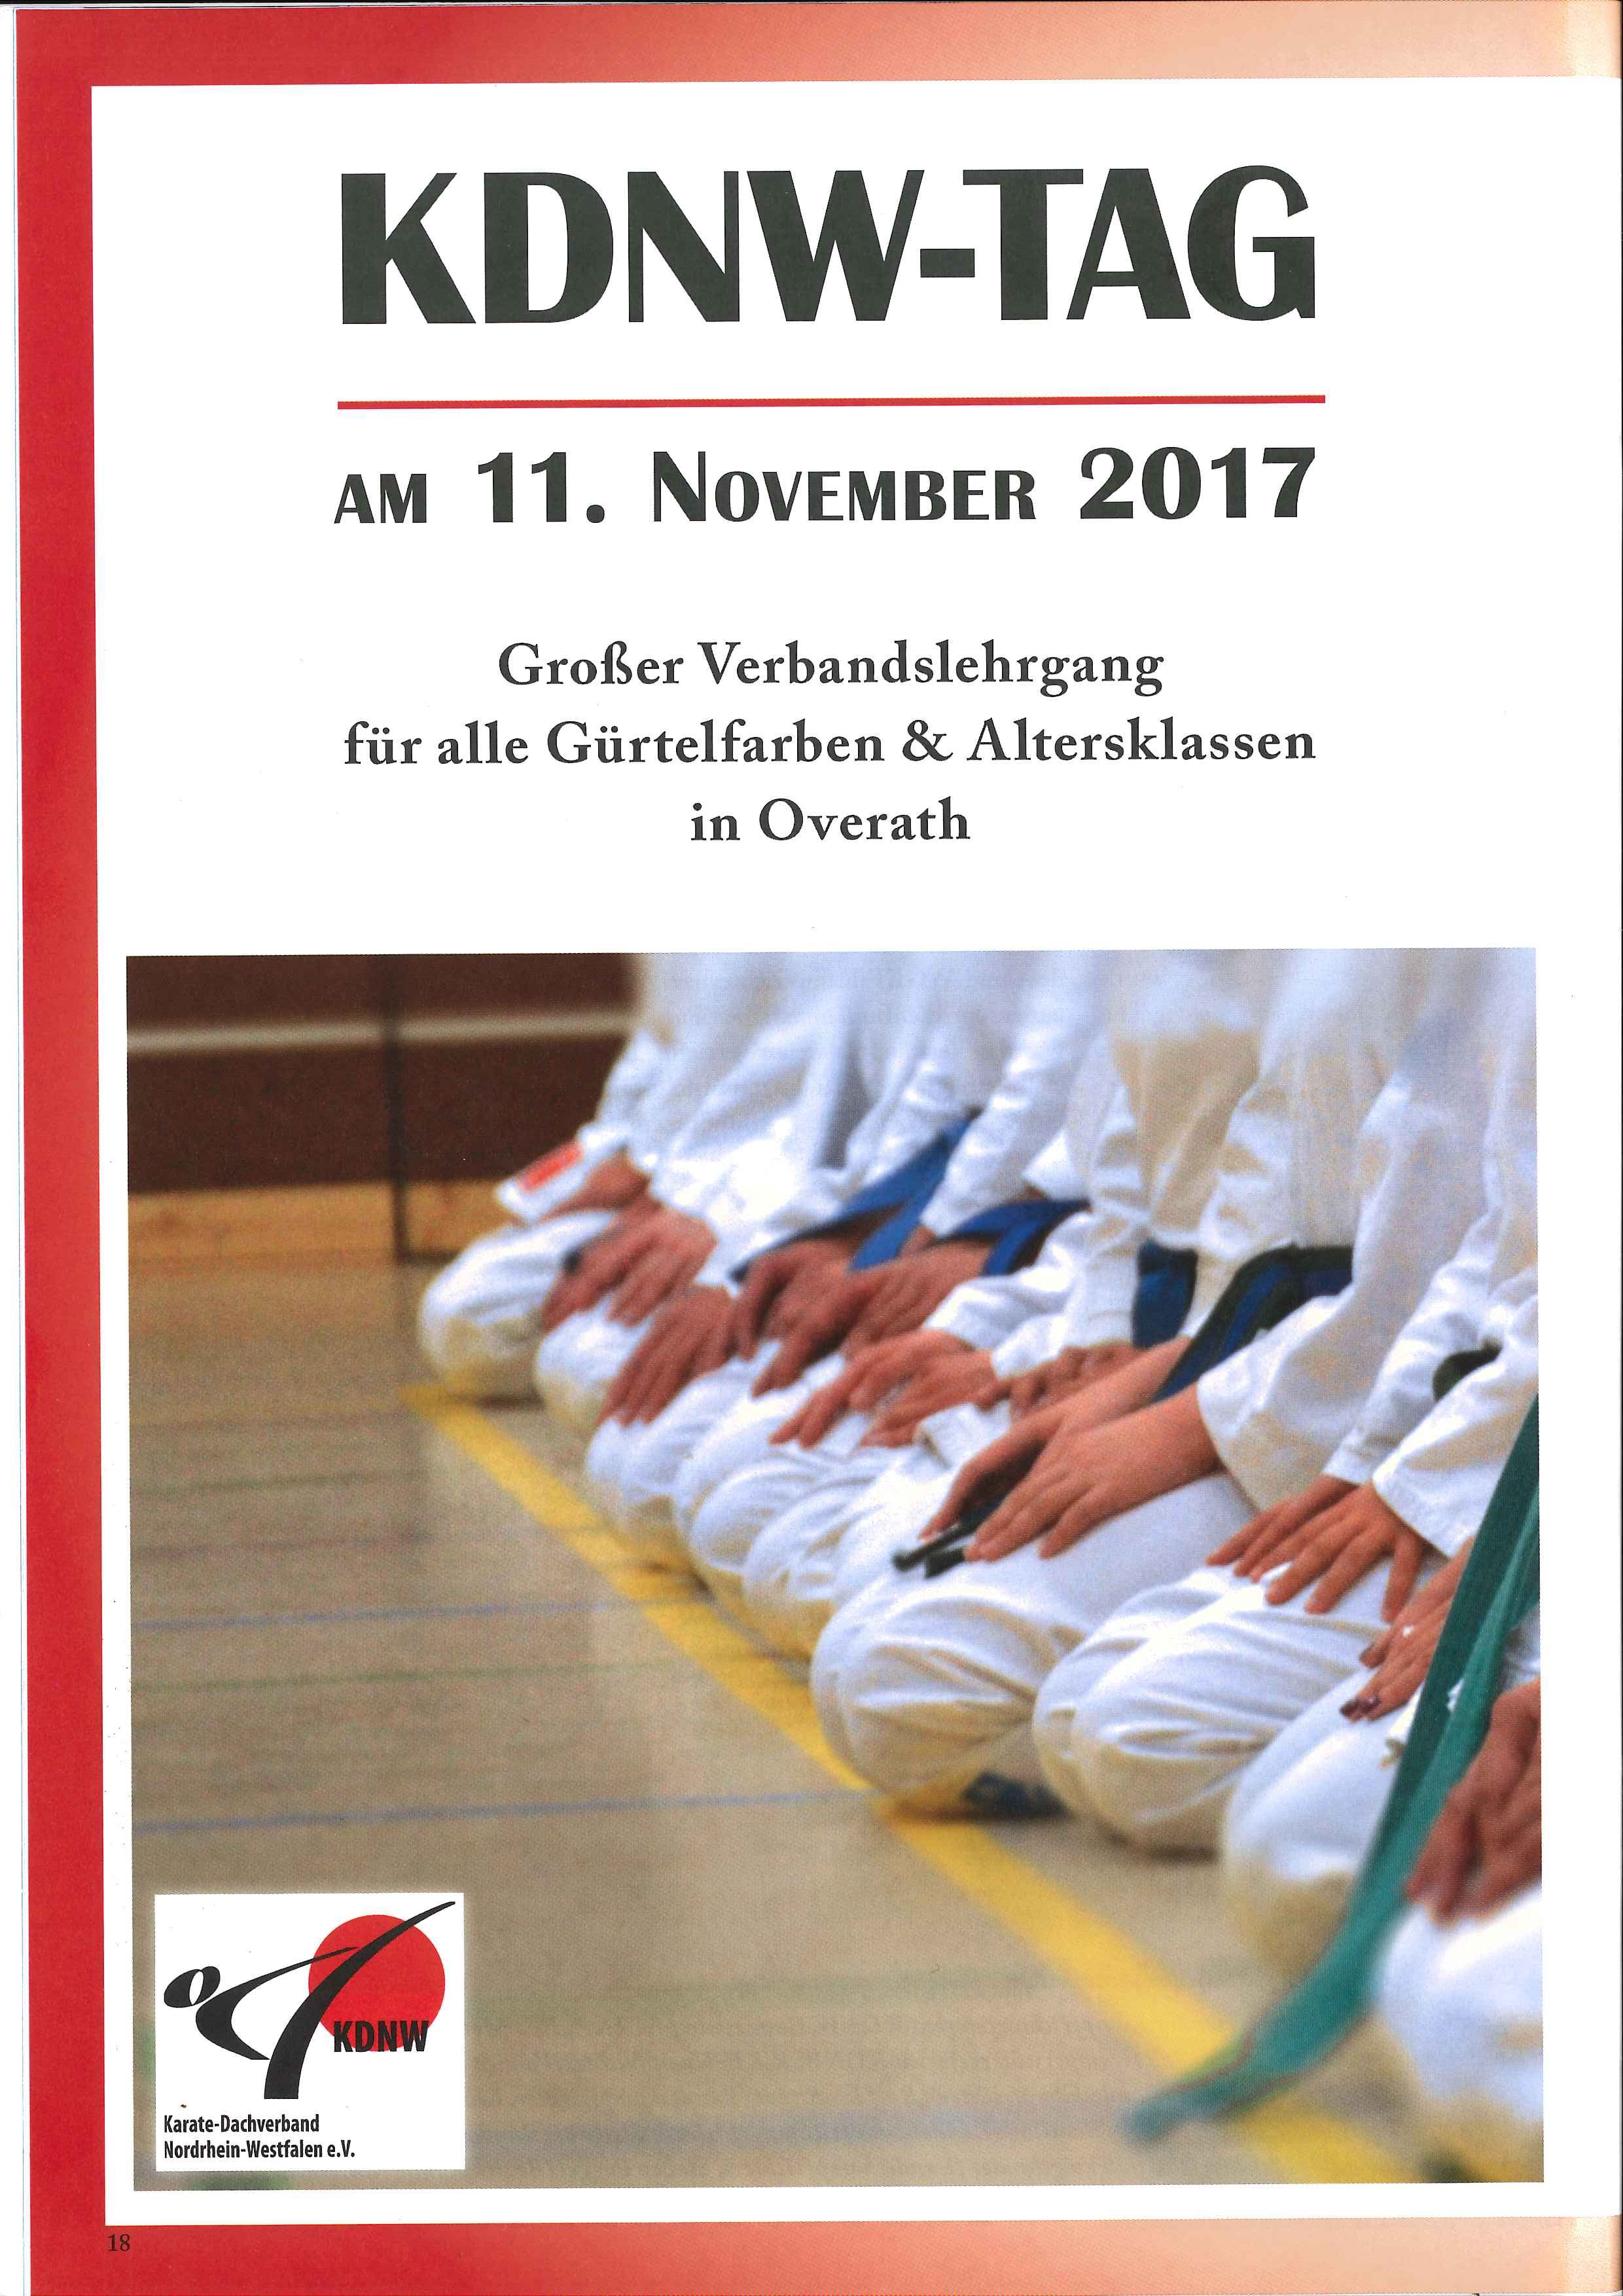 2. KDNW-Tag in KDNW Karate Aktuell 3/2017